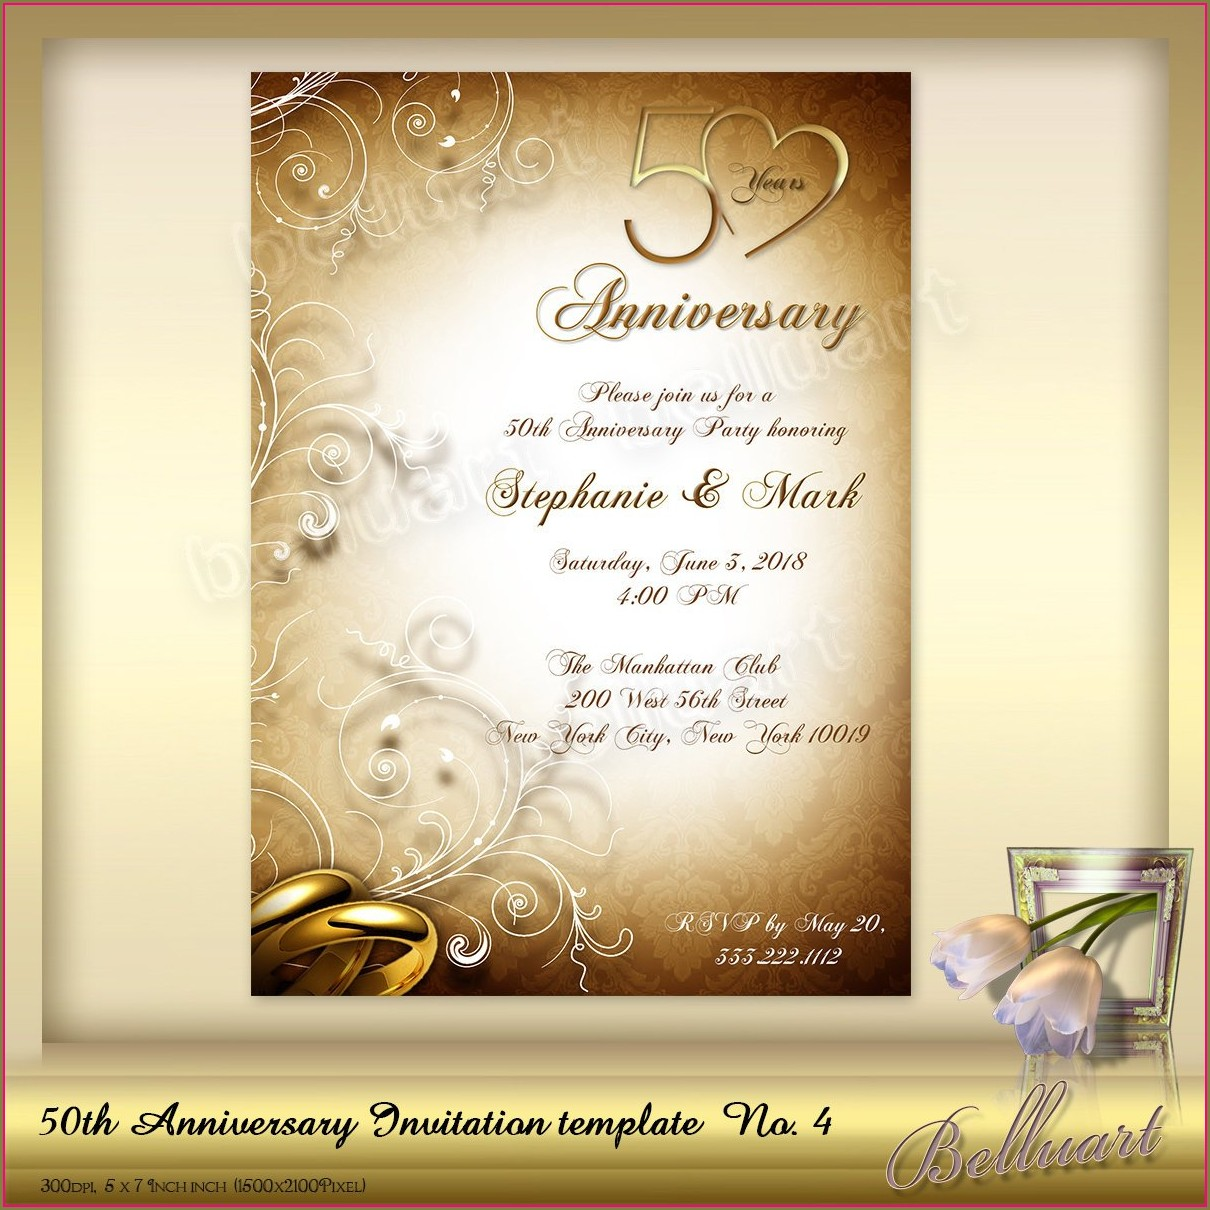 Anniversary Party 50th Wedding Anniversary Invitations Templates Free Download